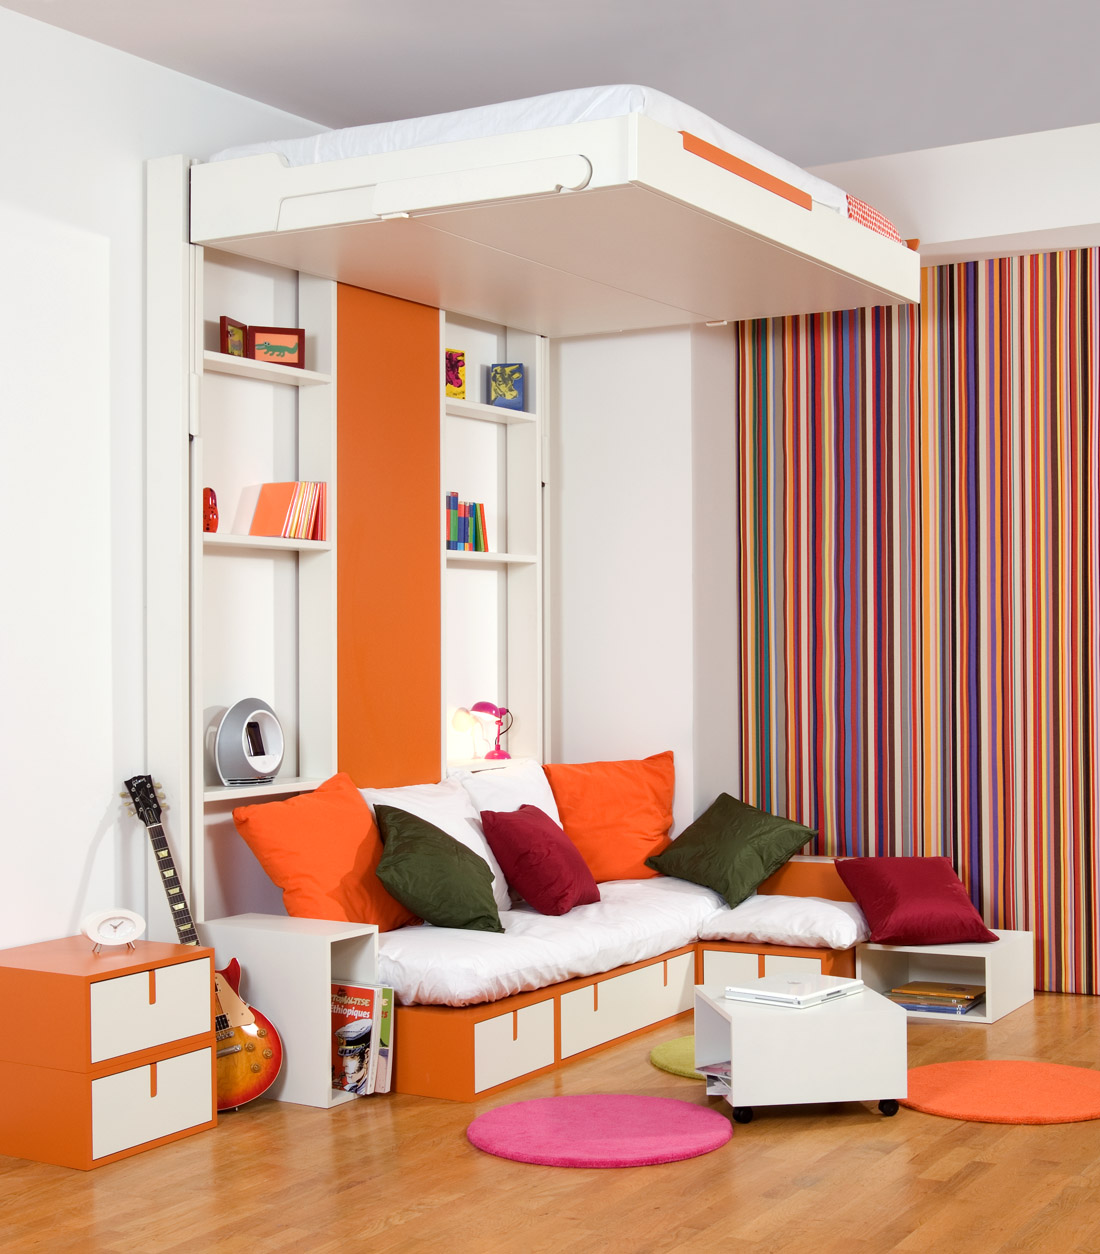 Space Saving Bedroom Furniture 10 great space-saving beds - living in a shoebox